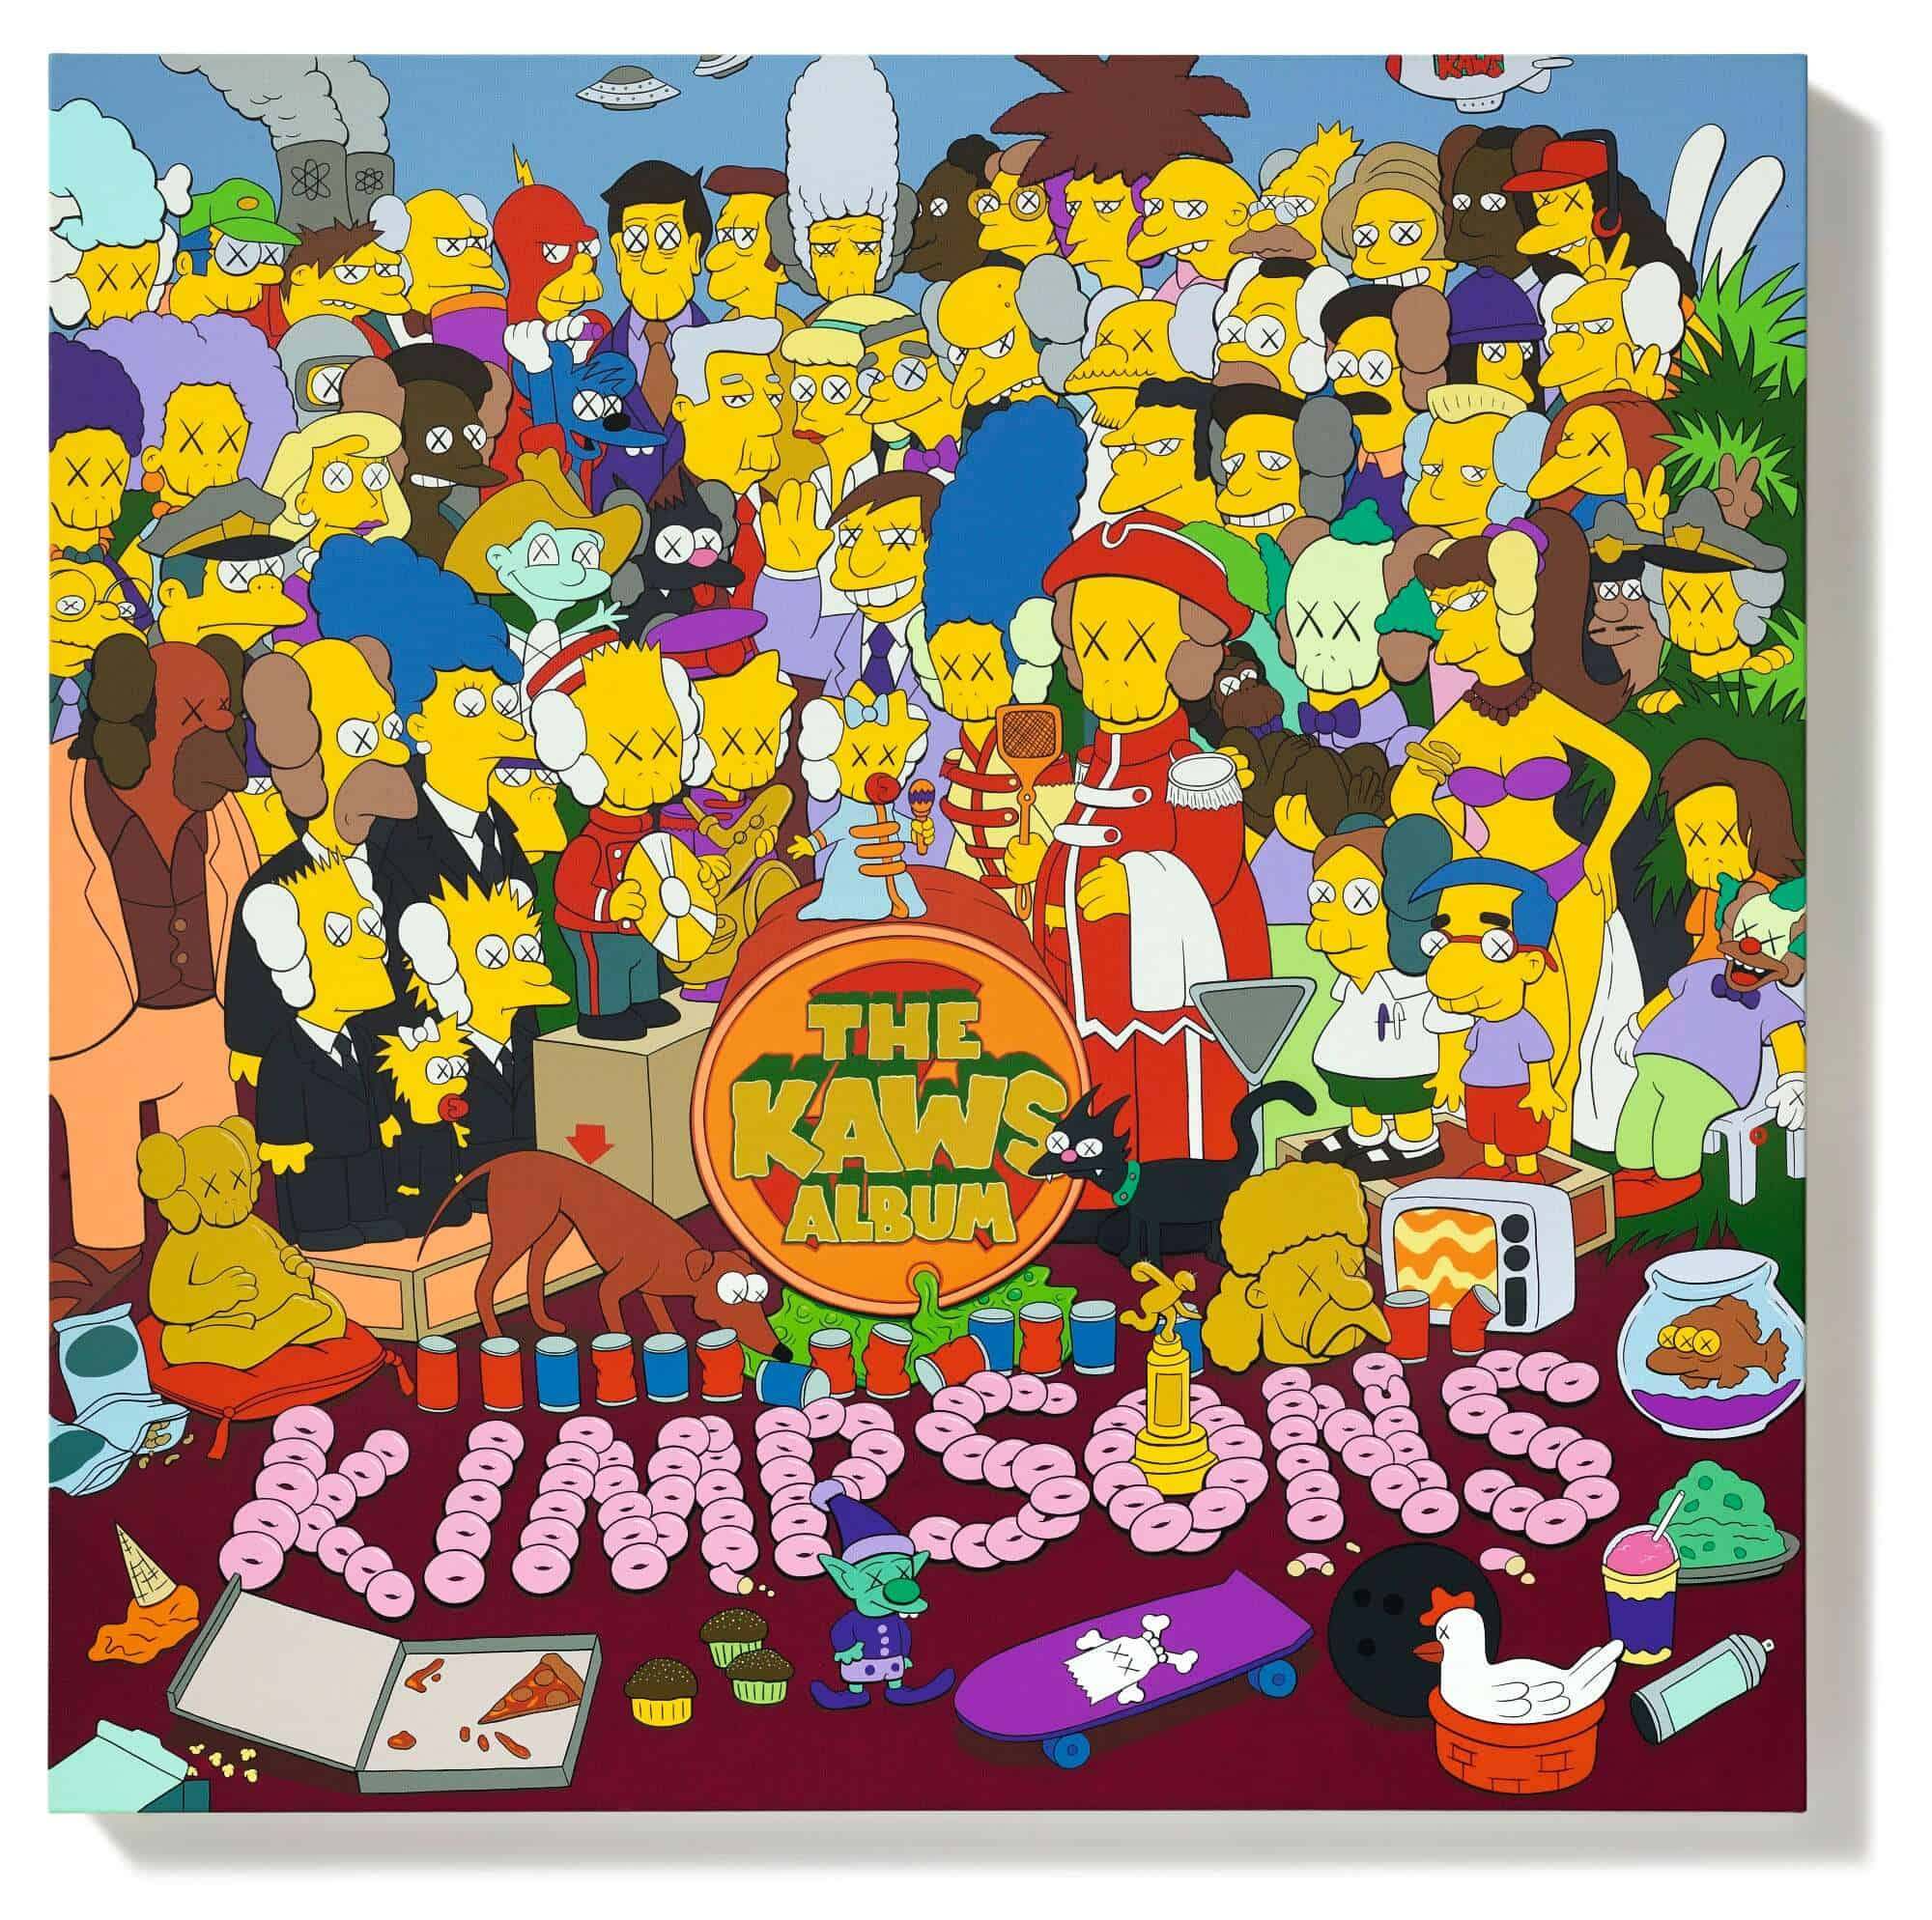 KAWS, THE KAWS ALBUM, which sold for $14.8 million at Sotheby's Hong Kong, setting a new record for the artist. Courtesy of Sotheby's.